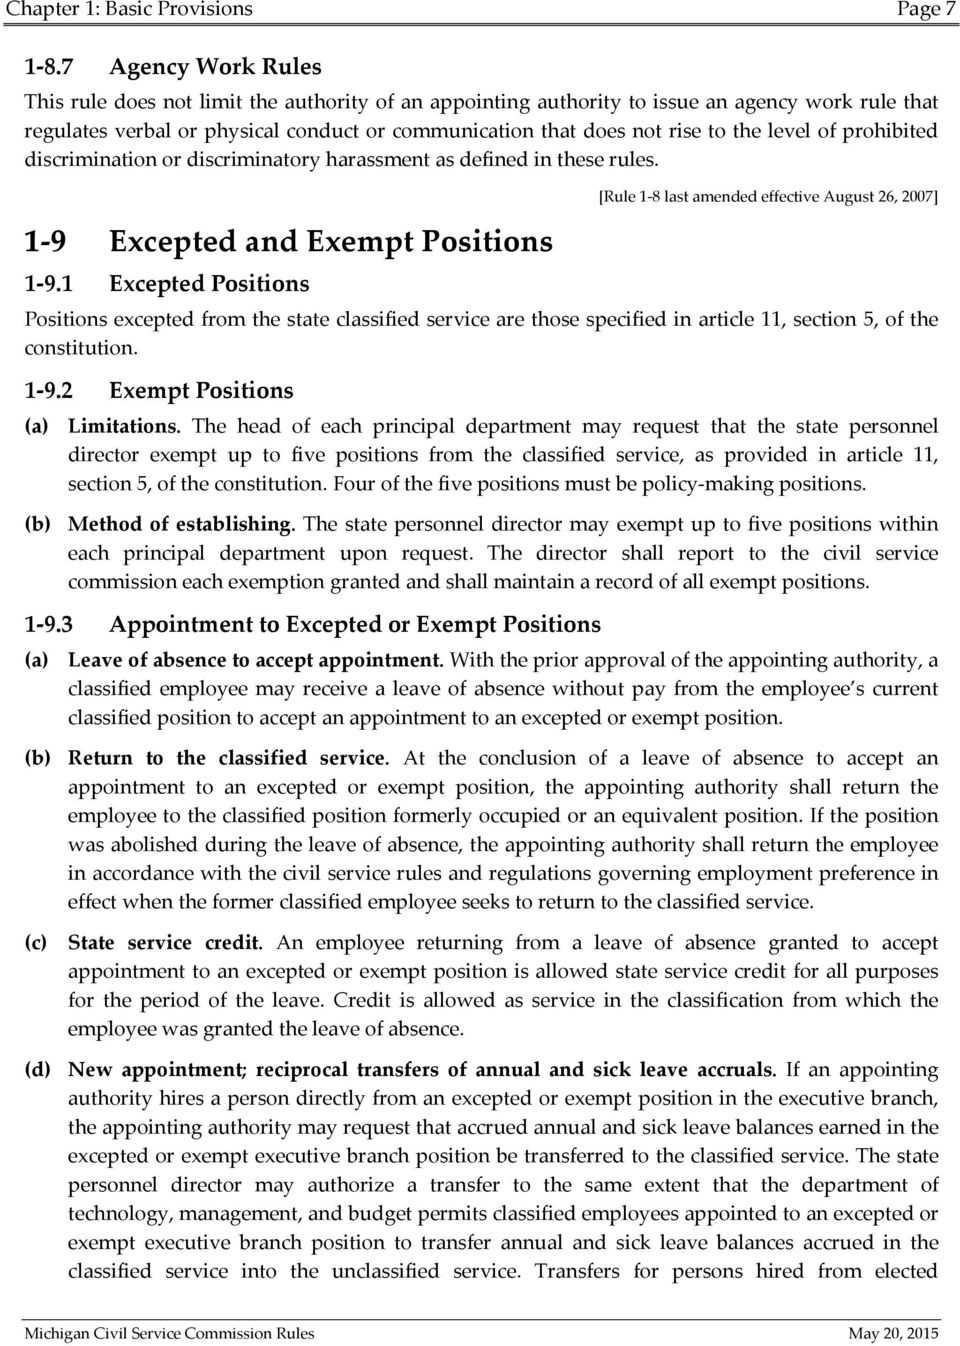 level of prohibited discrimination or discriminatory harassment as defined in these rules. 1-9 Excepted and Exempt Positions [Rule 1-8 last amended effective August 26, 2007] 1-9.